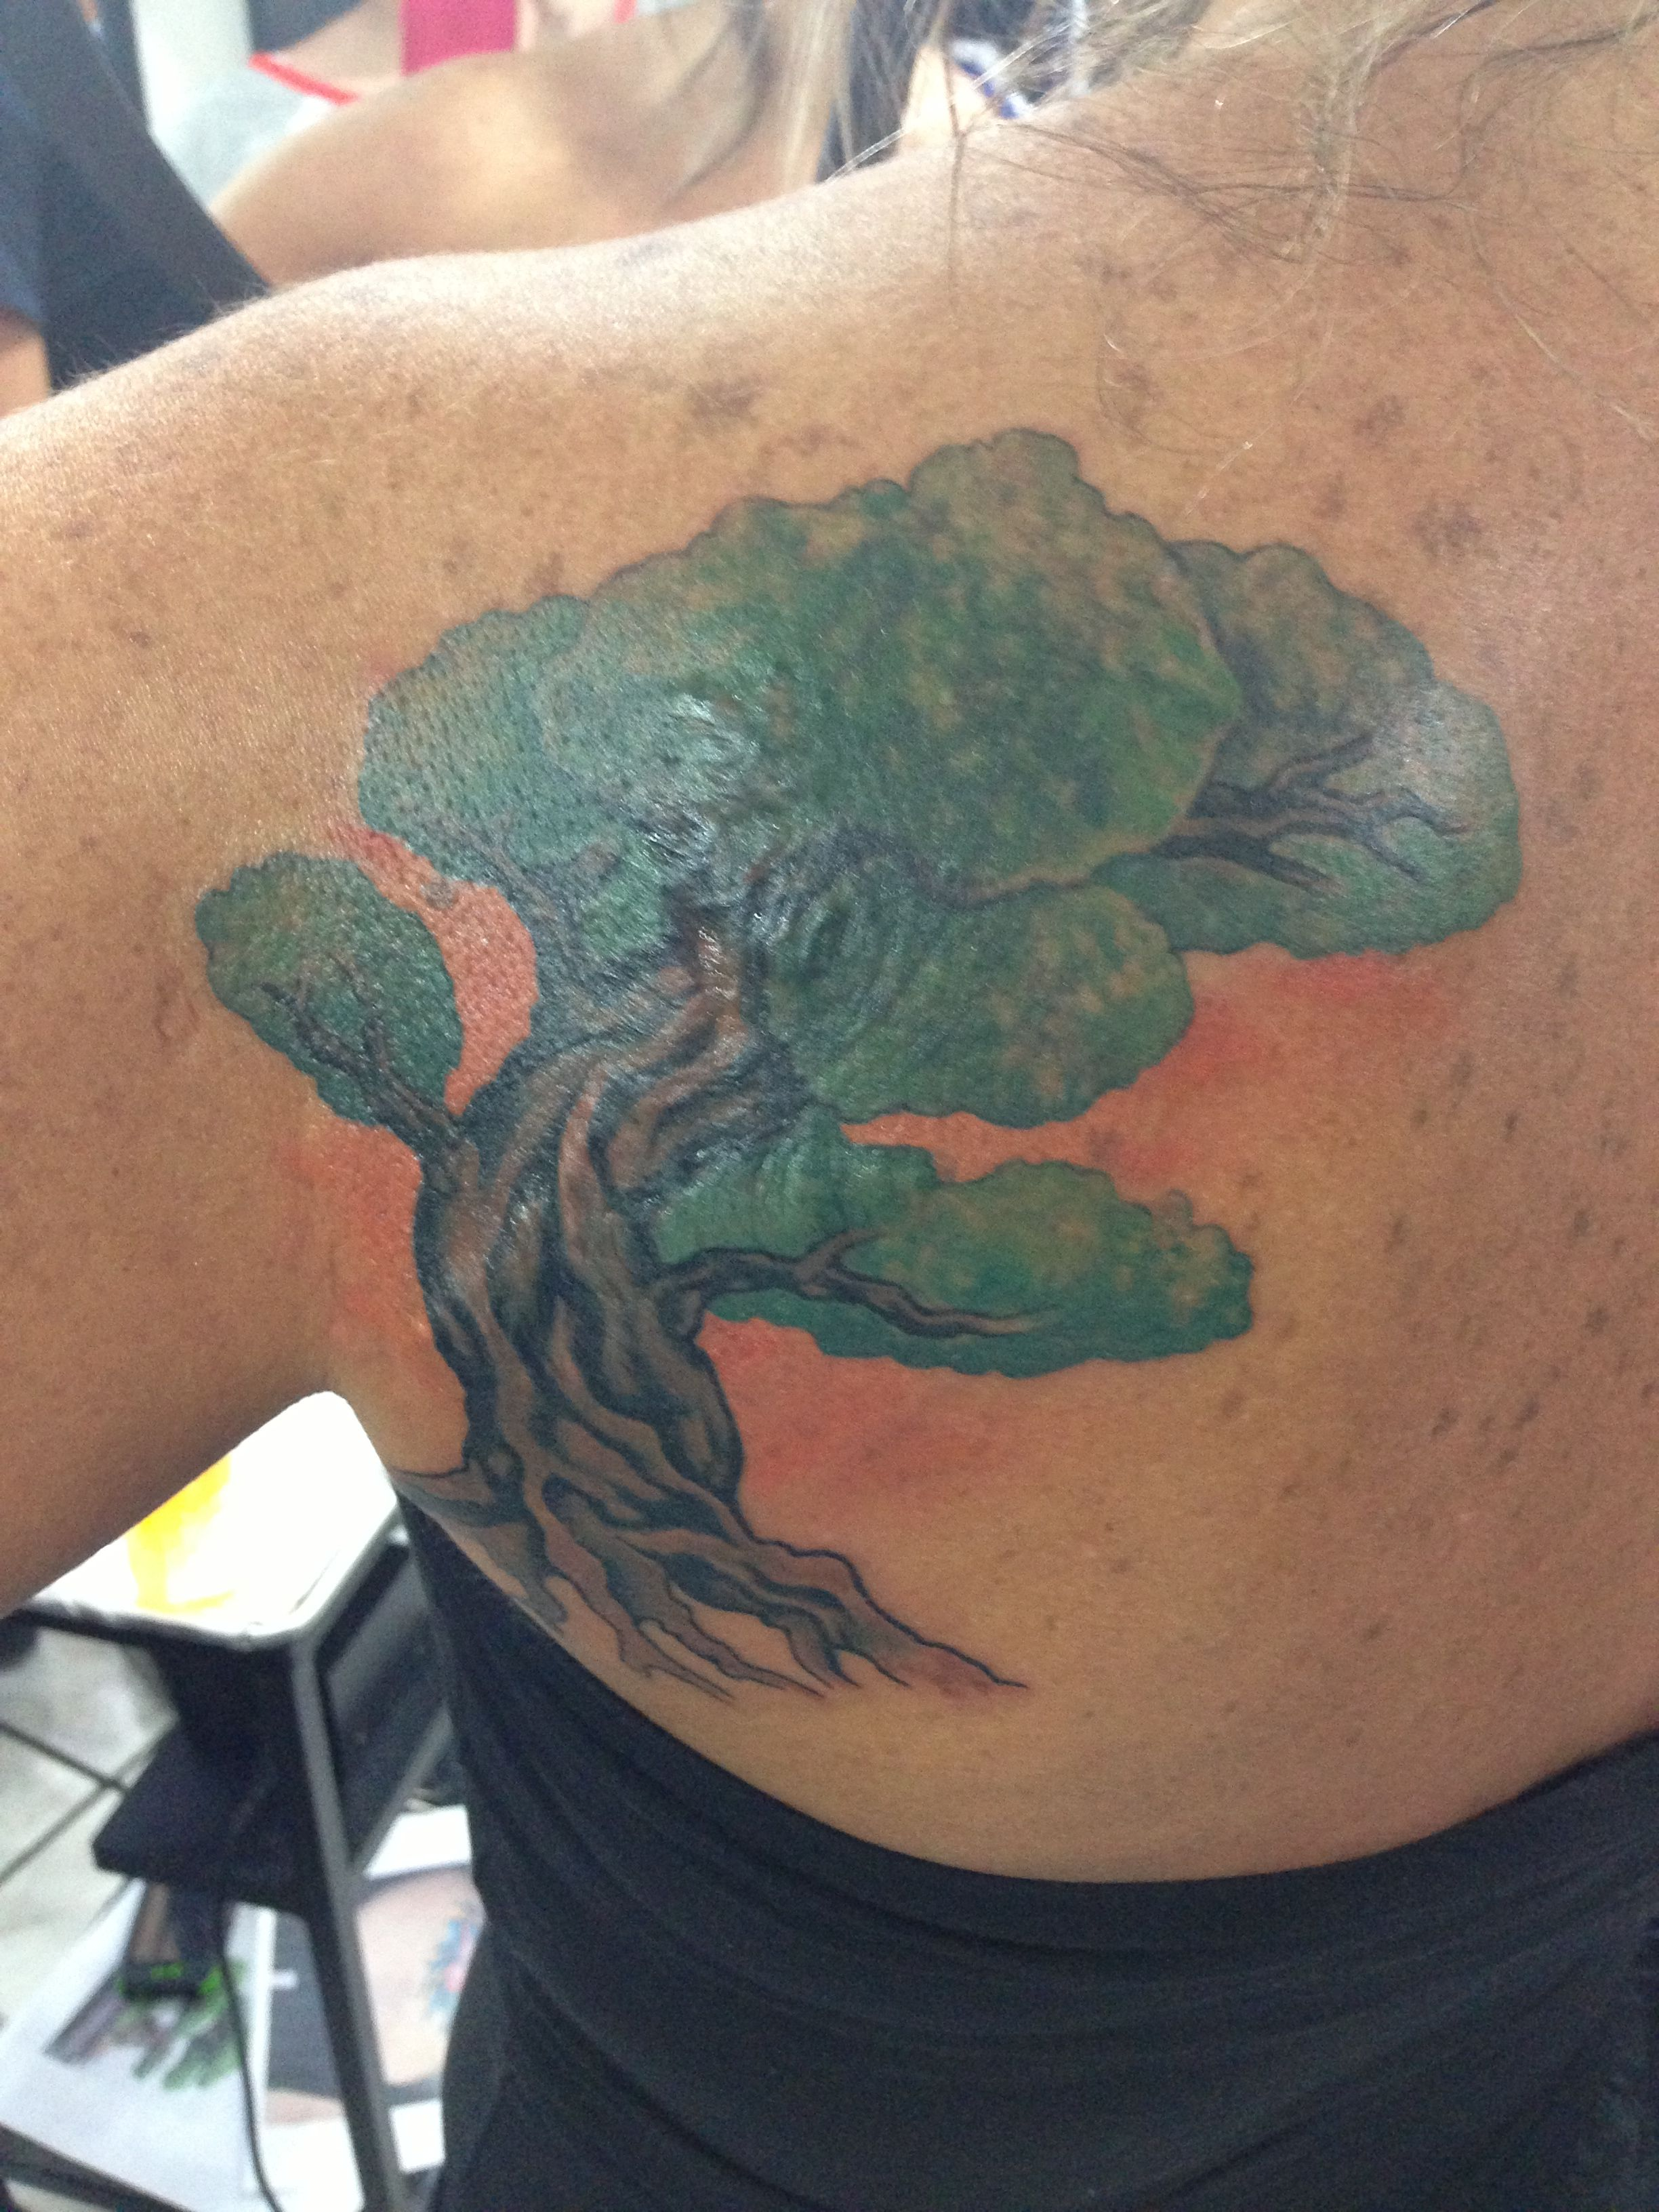 Small Bonsai Tattoo: Covering Up An Old Tattoo And A Scar With A Bonsai Tree